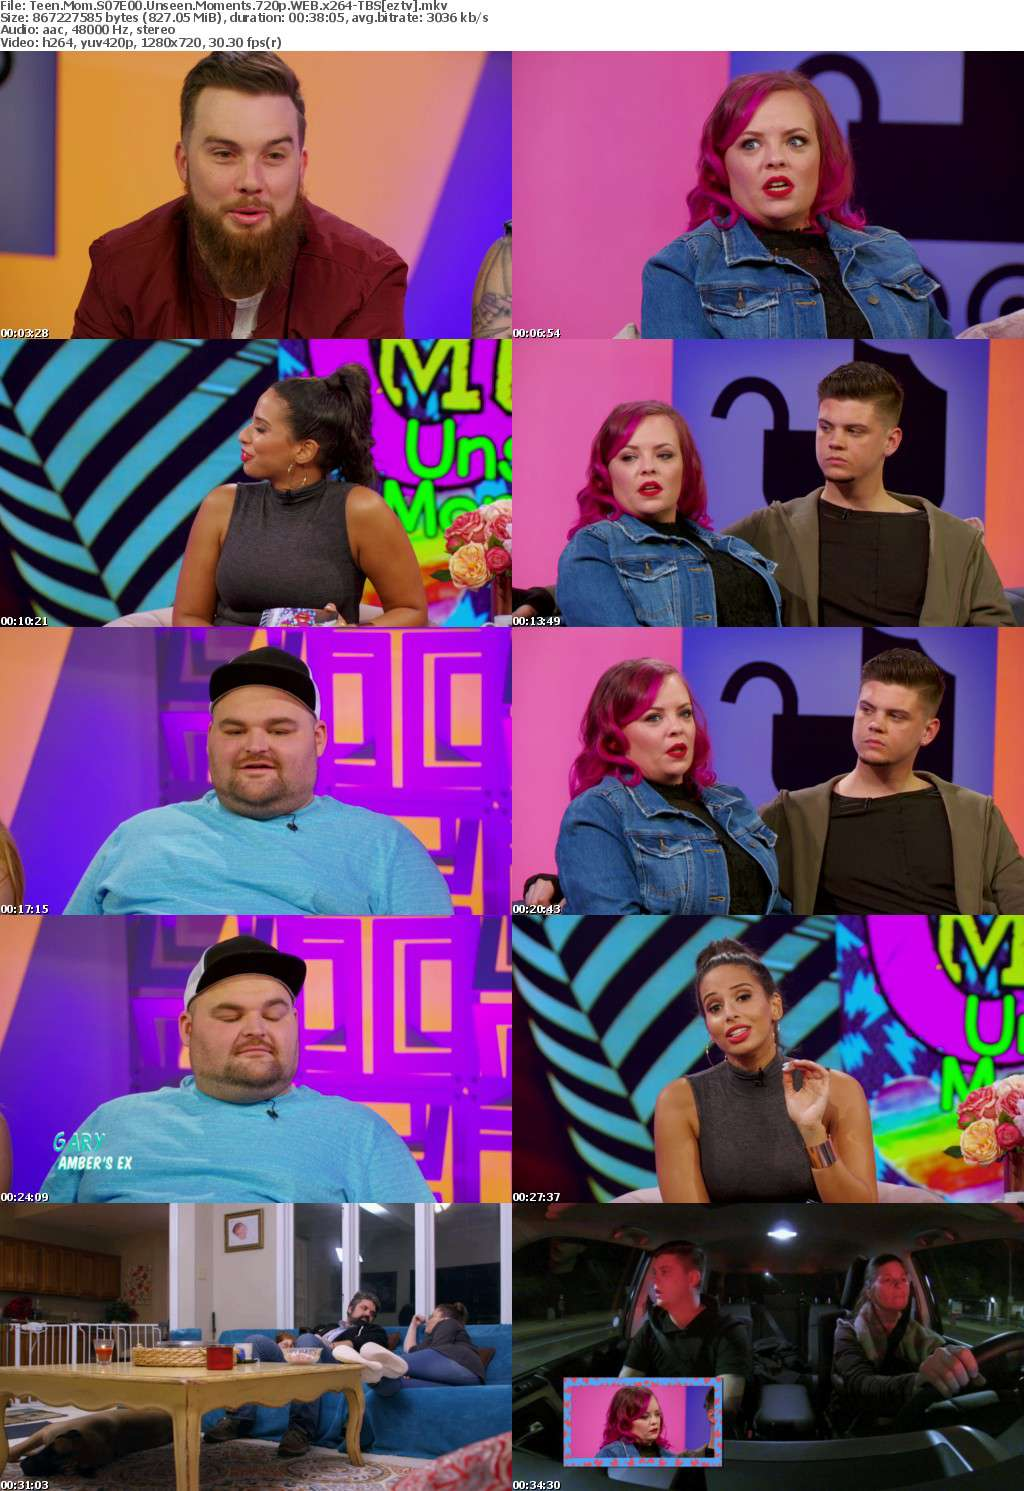 Teen Mom S07E00 Unseen Moments 720p WEB x264-TBS